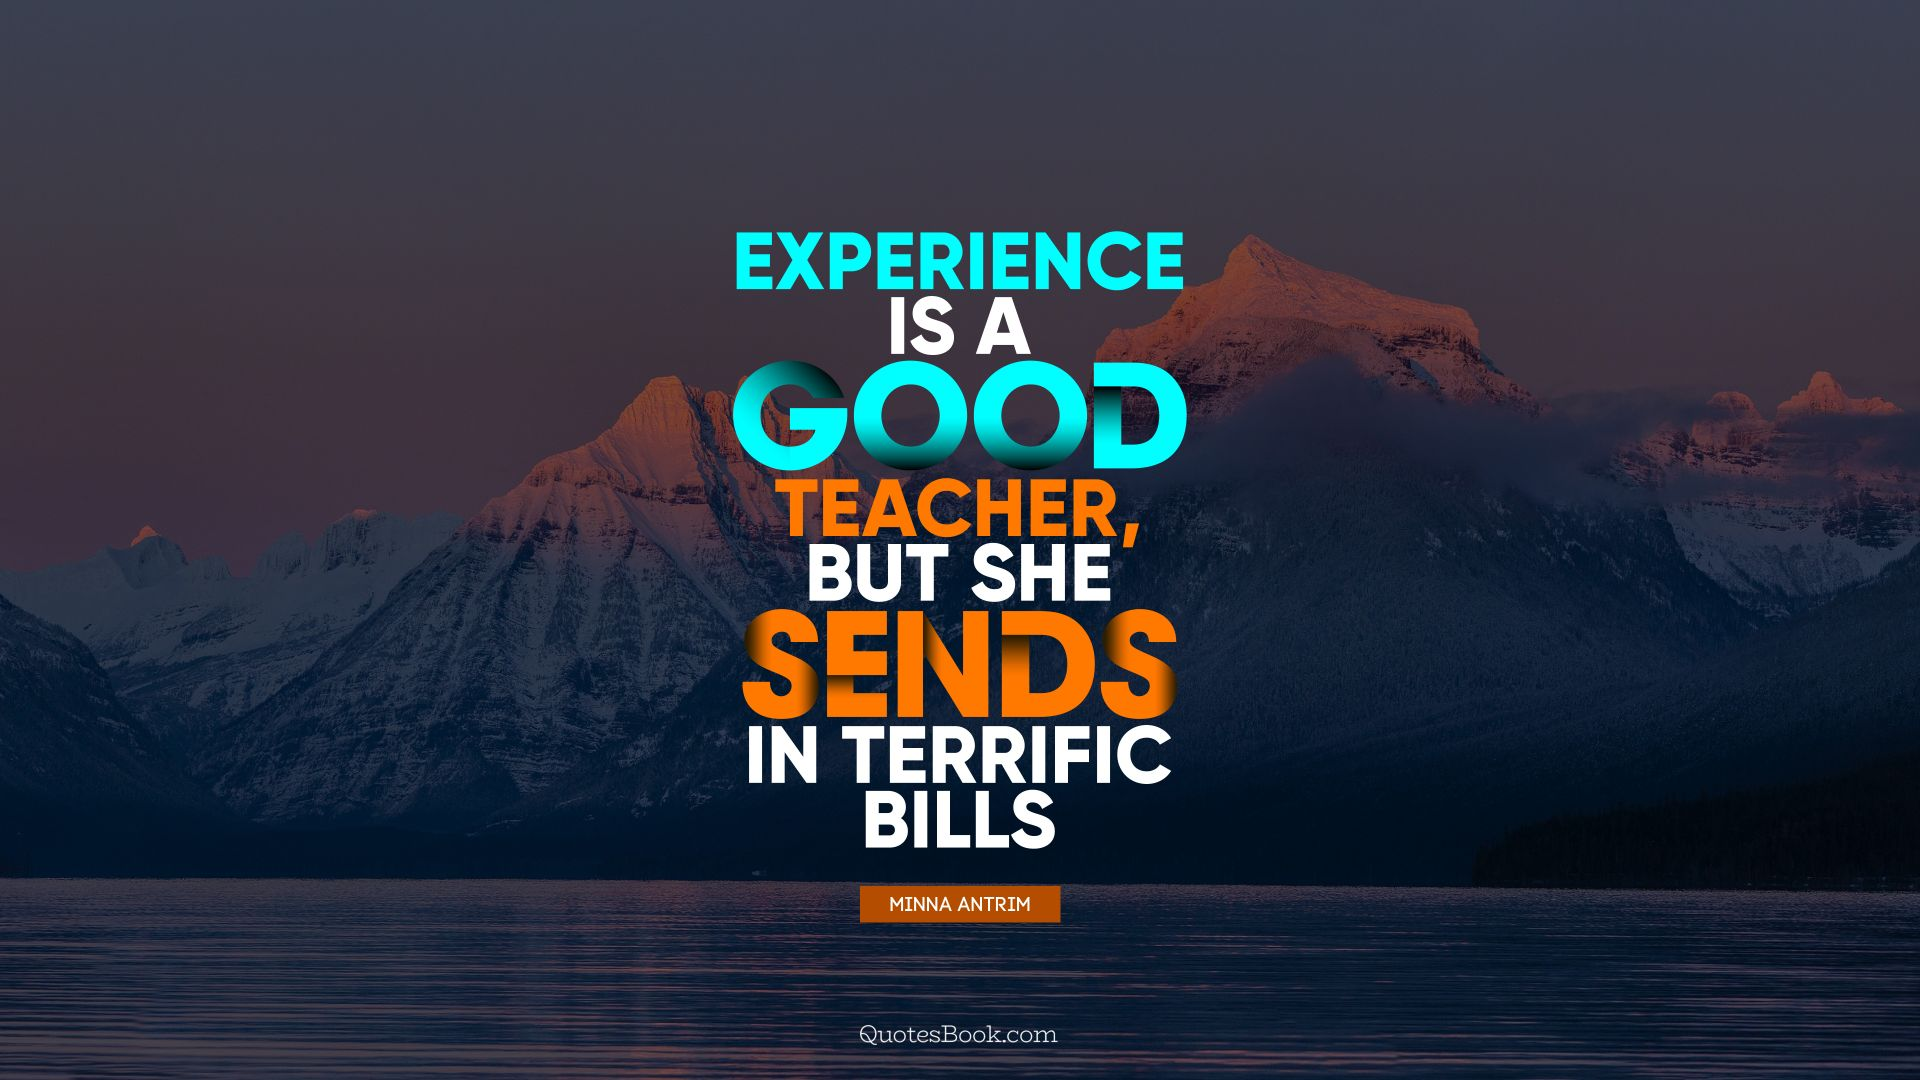 Experience is a good teacher, but she sends in terrific bills. - Quote by Minna Antrim